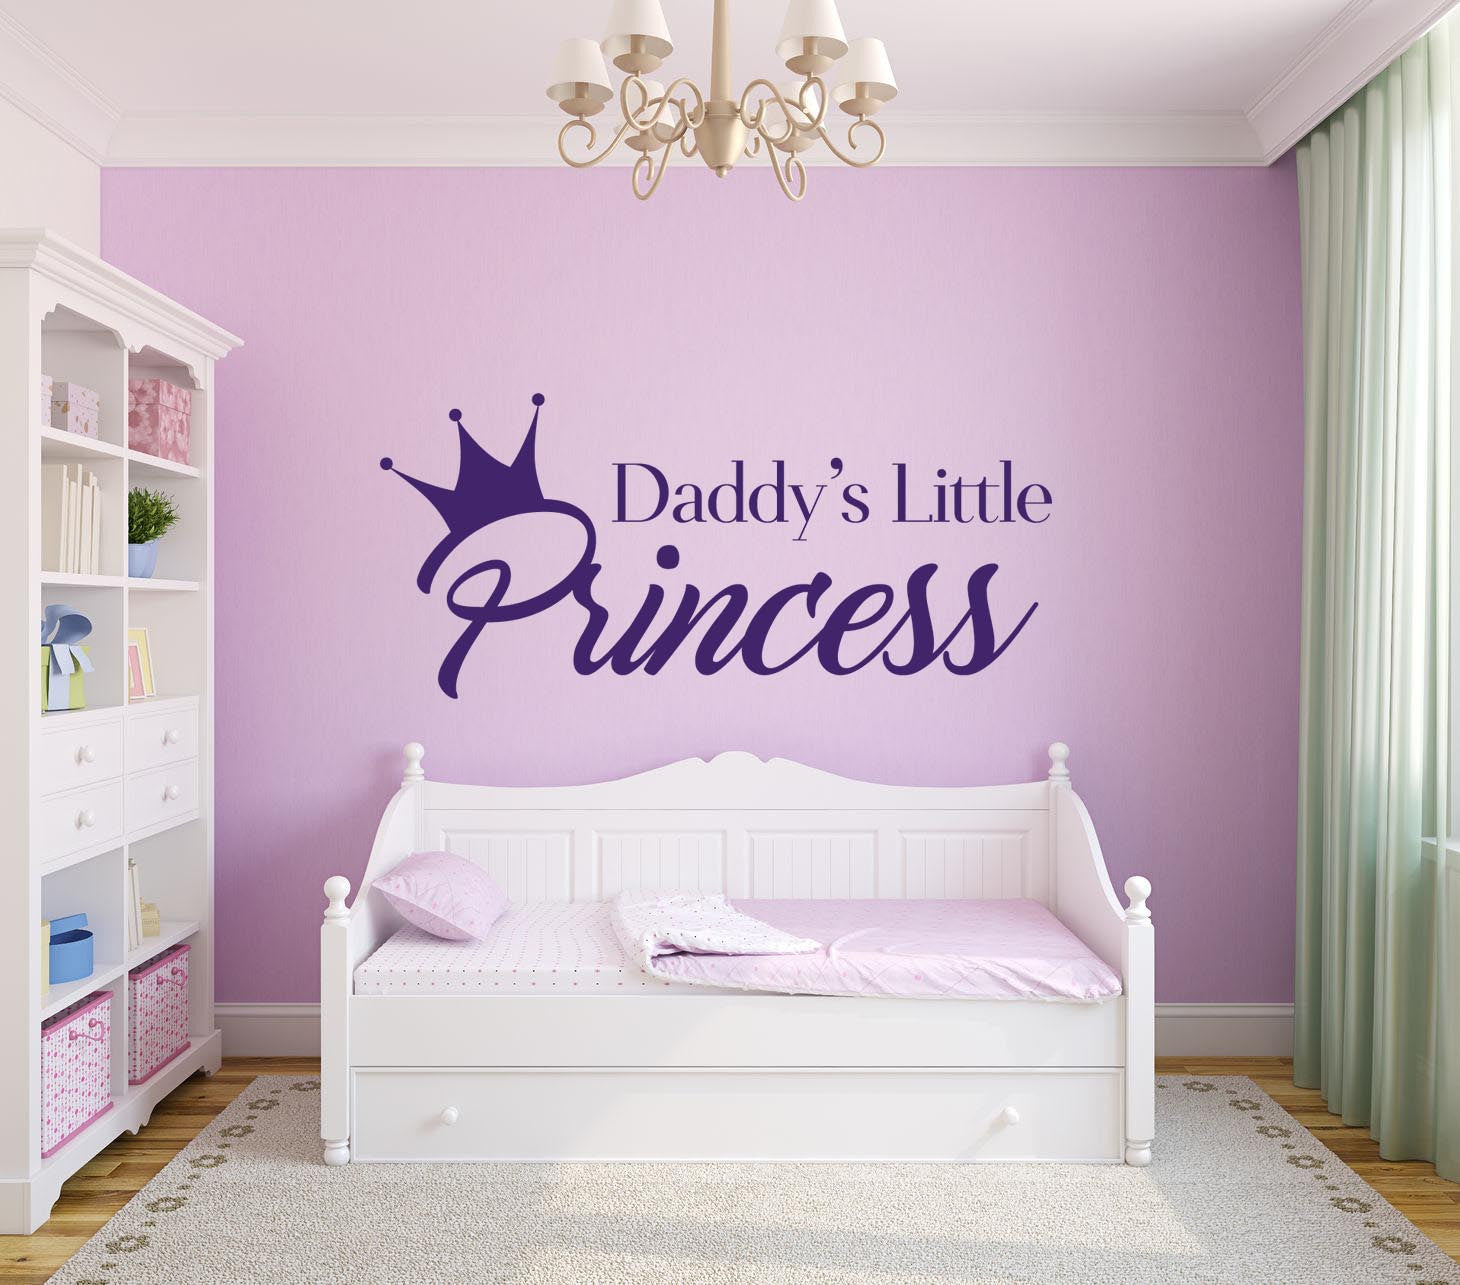 Daddys little princess wall decal canvas art rocks daddys little princess wall decal canvas art rocks 1 amipublicfo Image collections